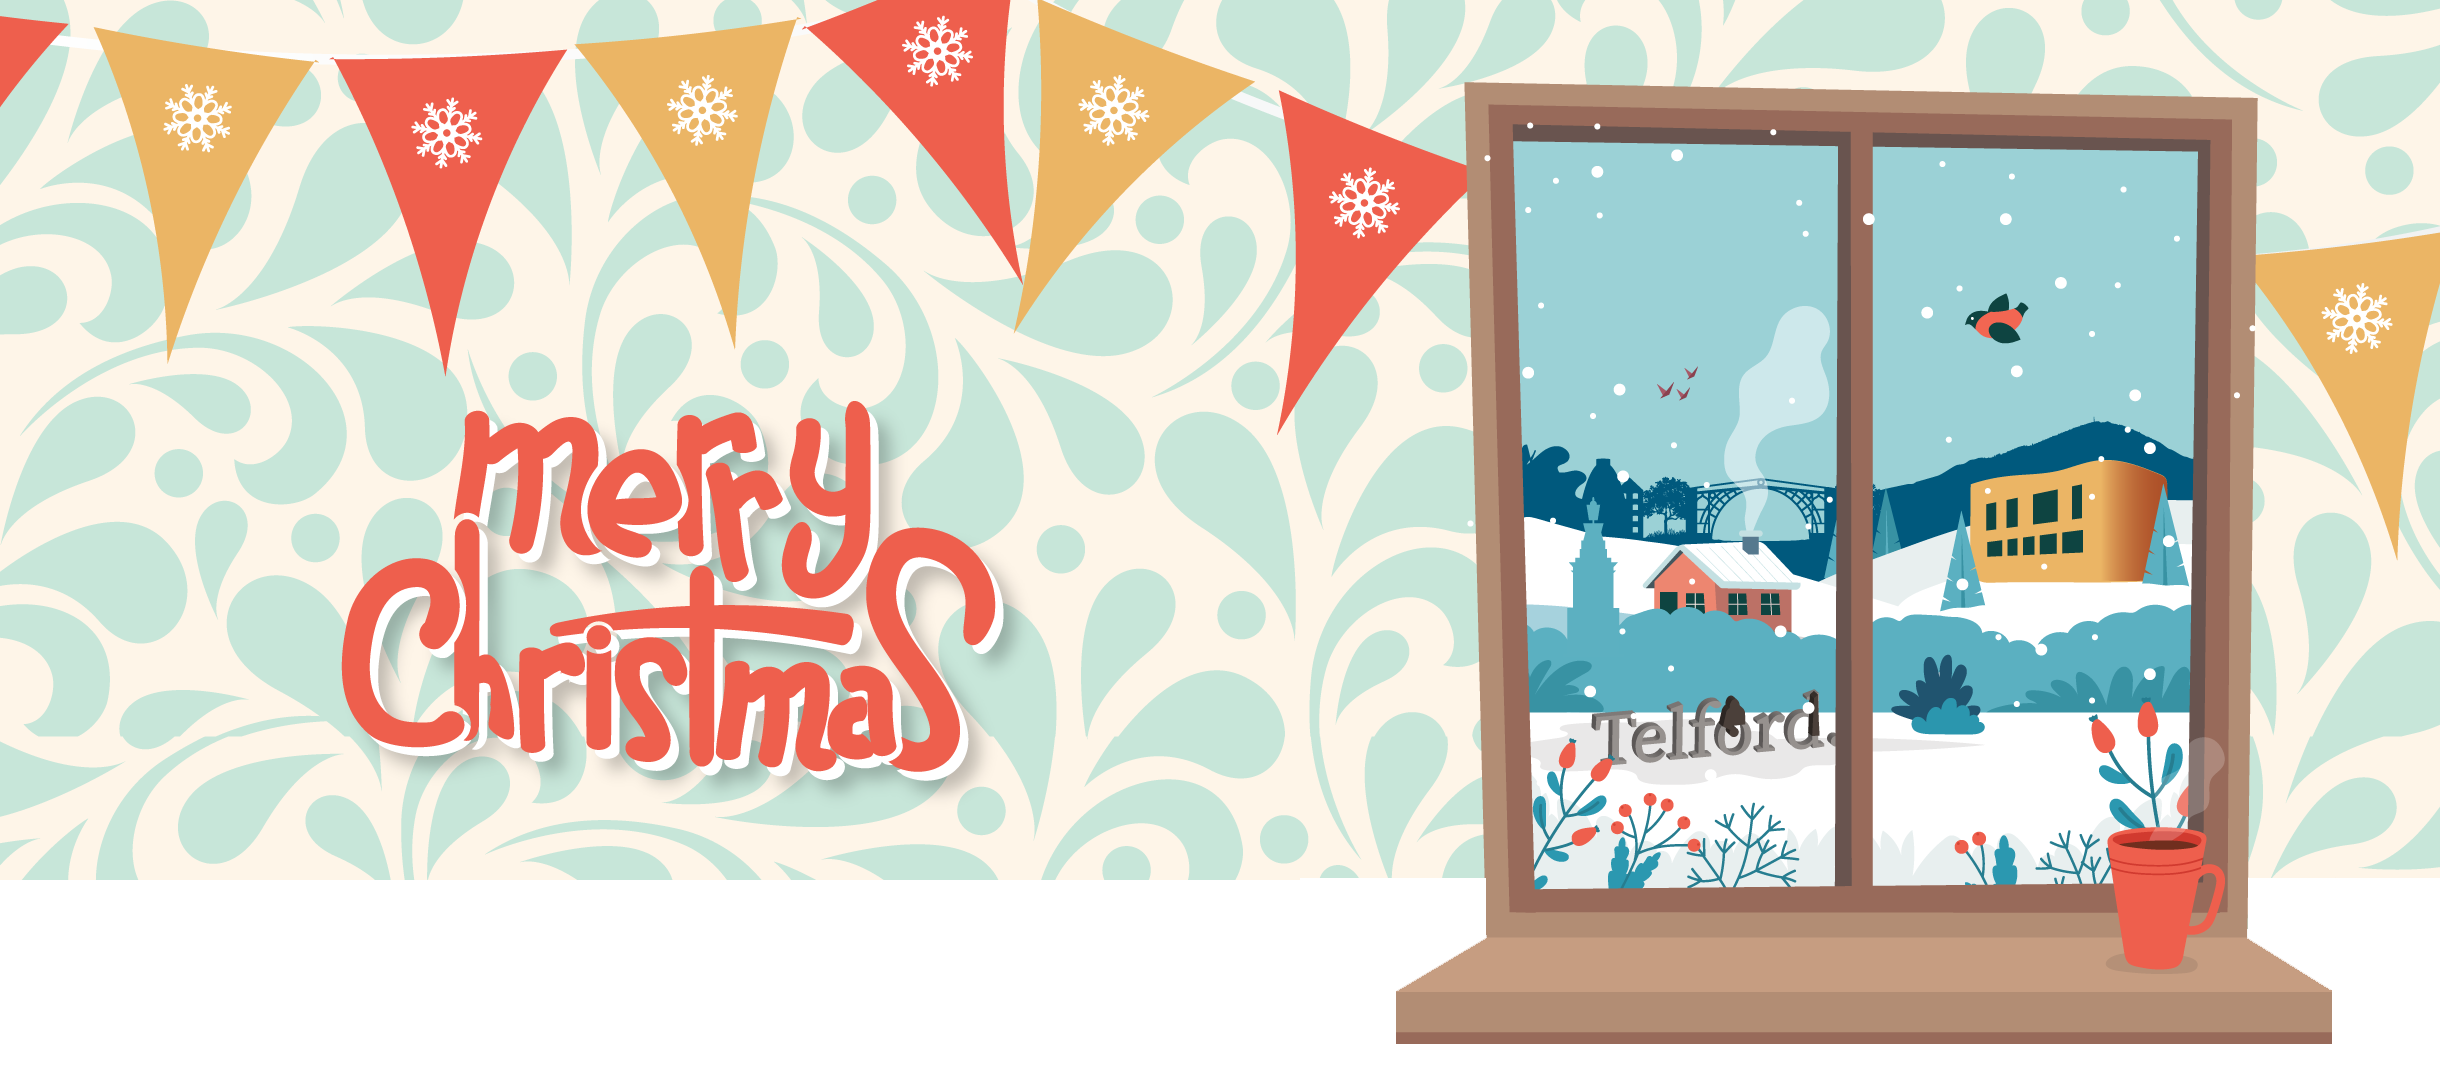 """Illustration of orange and yellow bunting and a window displaying a snowy Christmas display with the words """"Merry Christmas"""""""